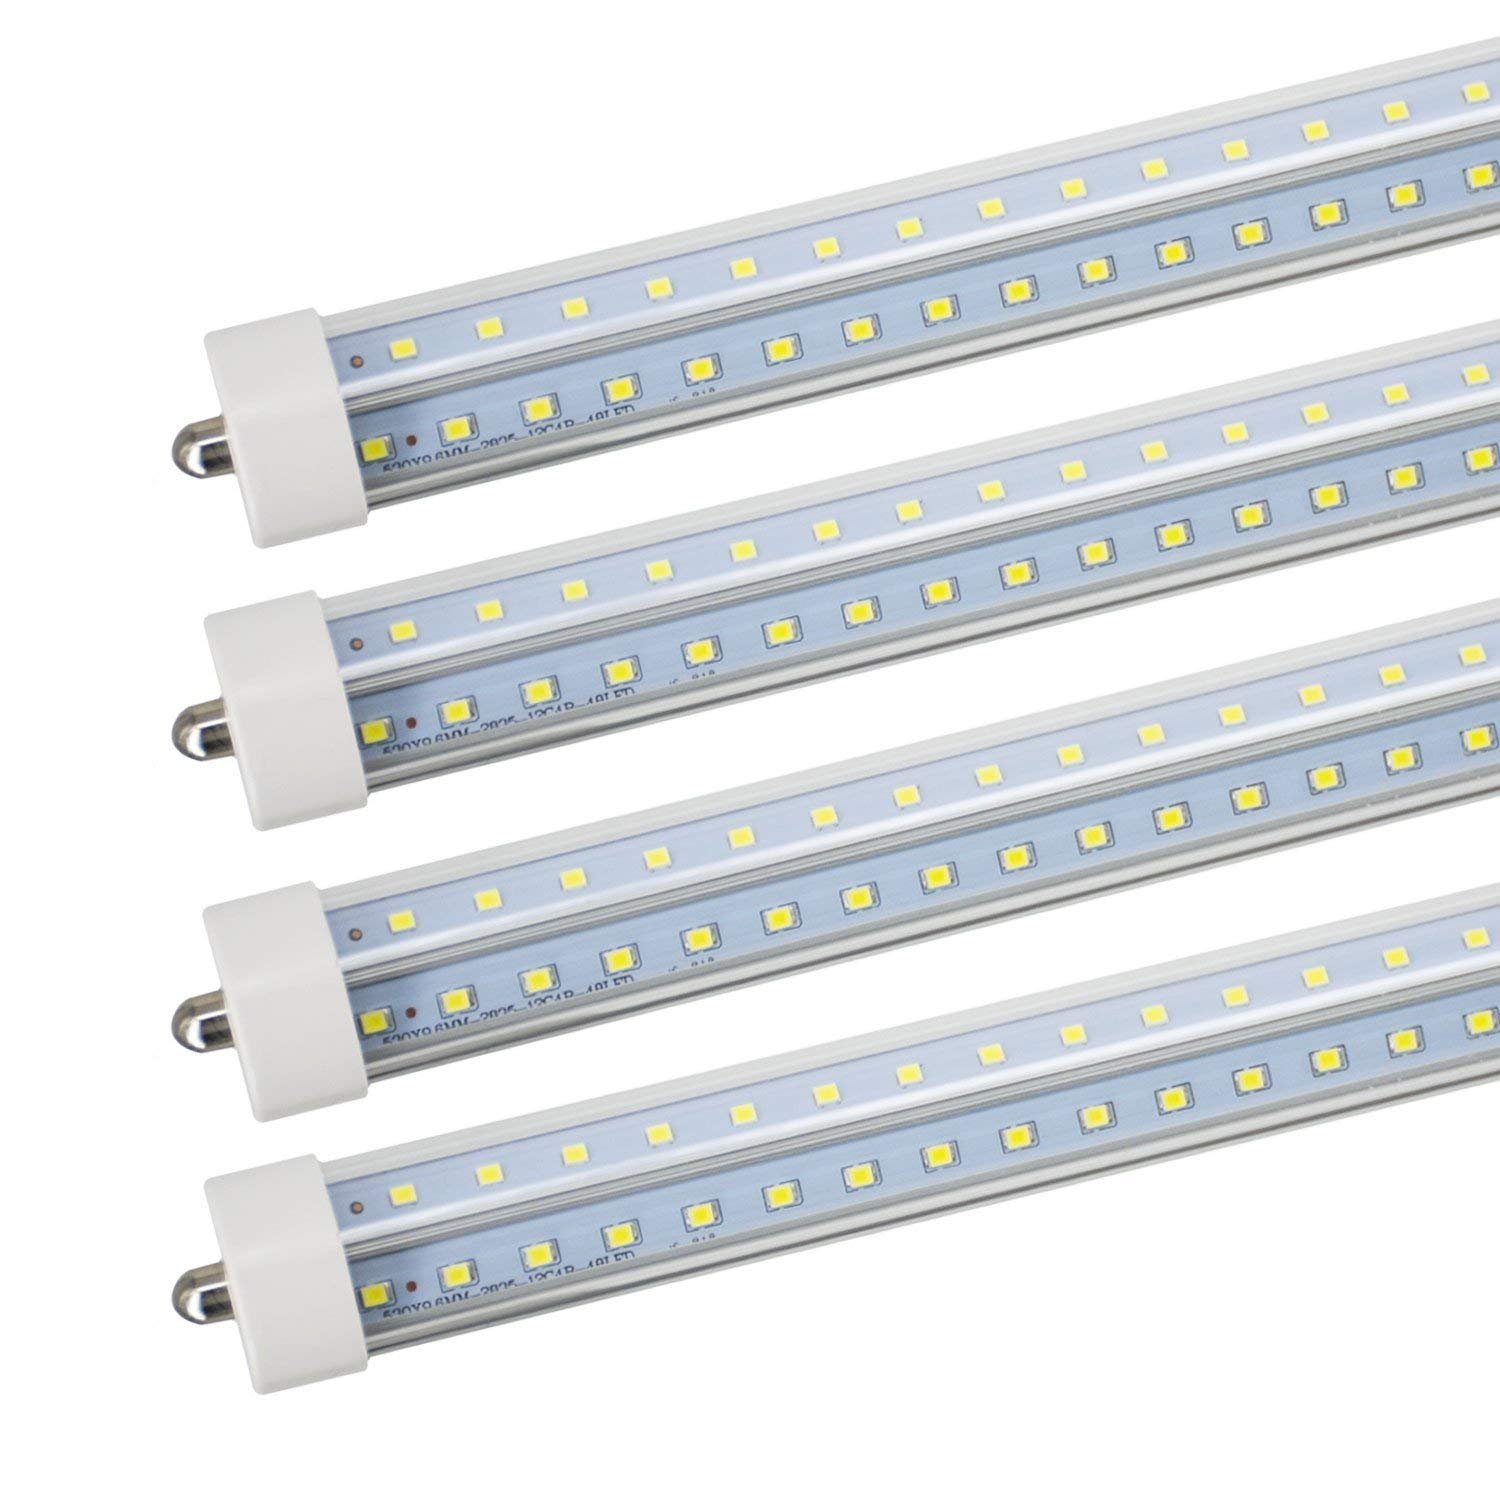 JESLED T8/T10/T12 8FT LED Tube Light, Single Pin FA8 Base, 50W 6000LM 5000K Daylight White, 270 Degree V Shaped LED Fluorescent Bulb (130W Replacement), Clear Cover, Dual-Ended Power (4-Pack)